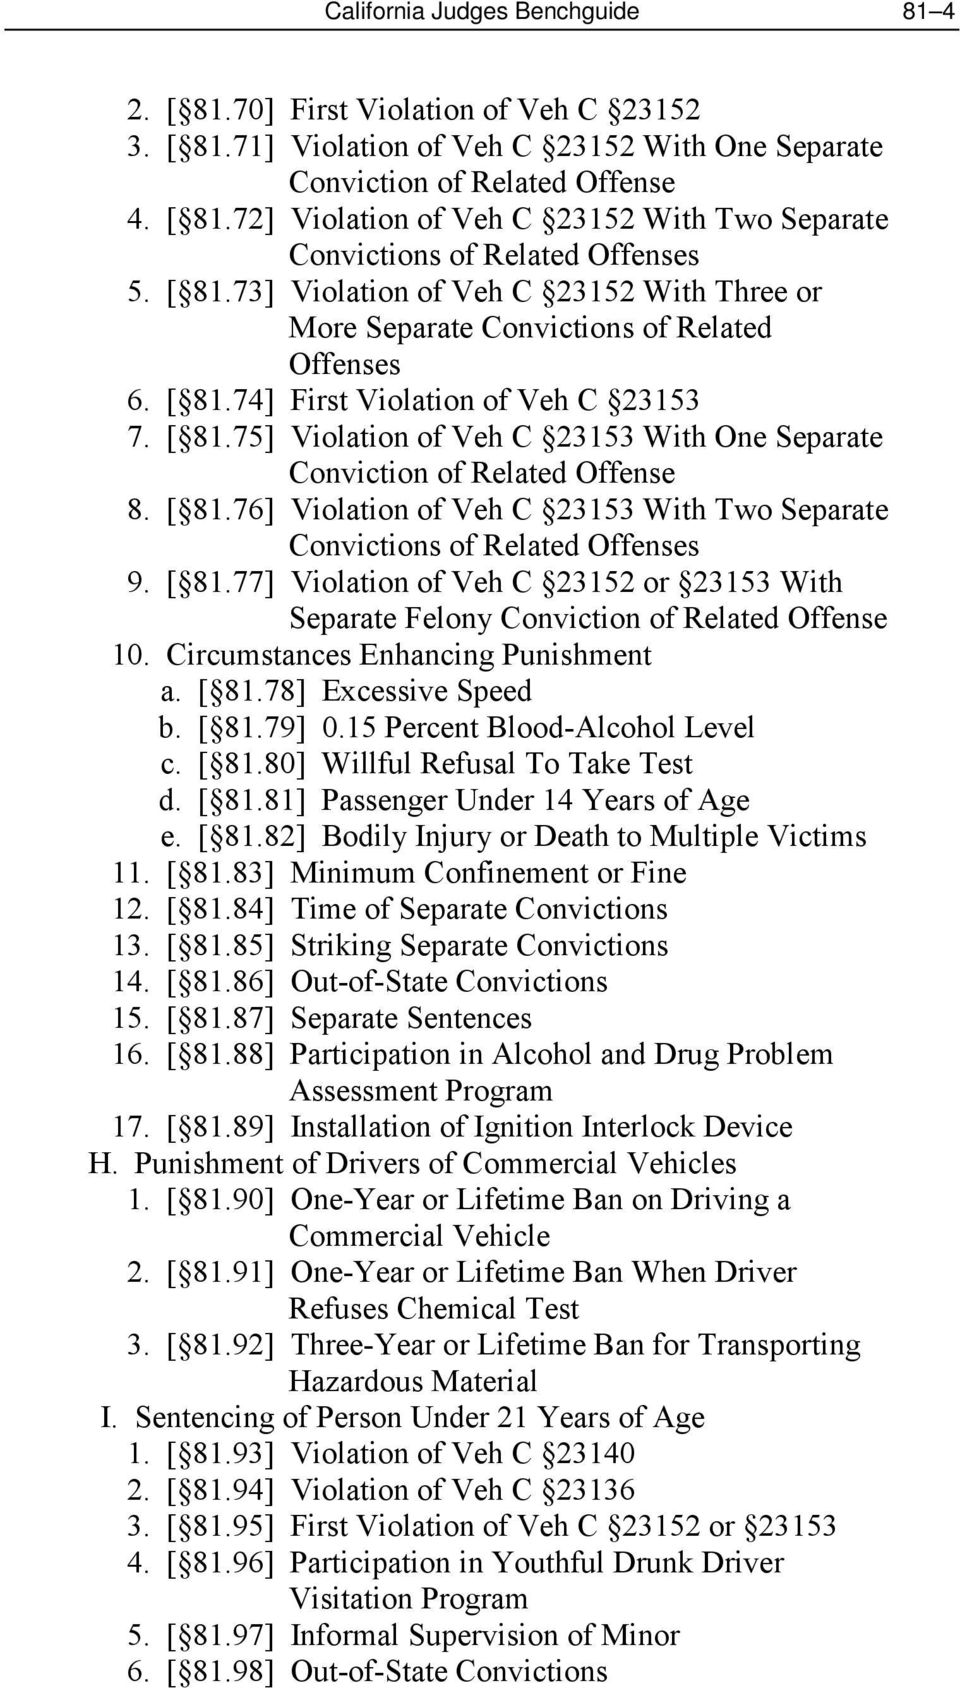 [ 81.76] Violation of Veh C 23153 With Two Separate Convictions of Related Offenses 9. [ 81.77] Violation of Veh C 23152 or 23153 With Separate Felony Conviction of Related Offense 10.